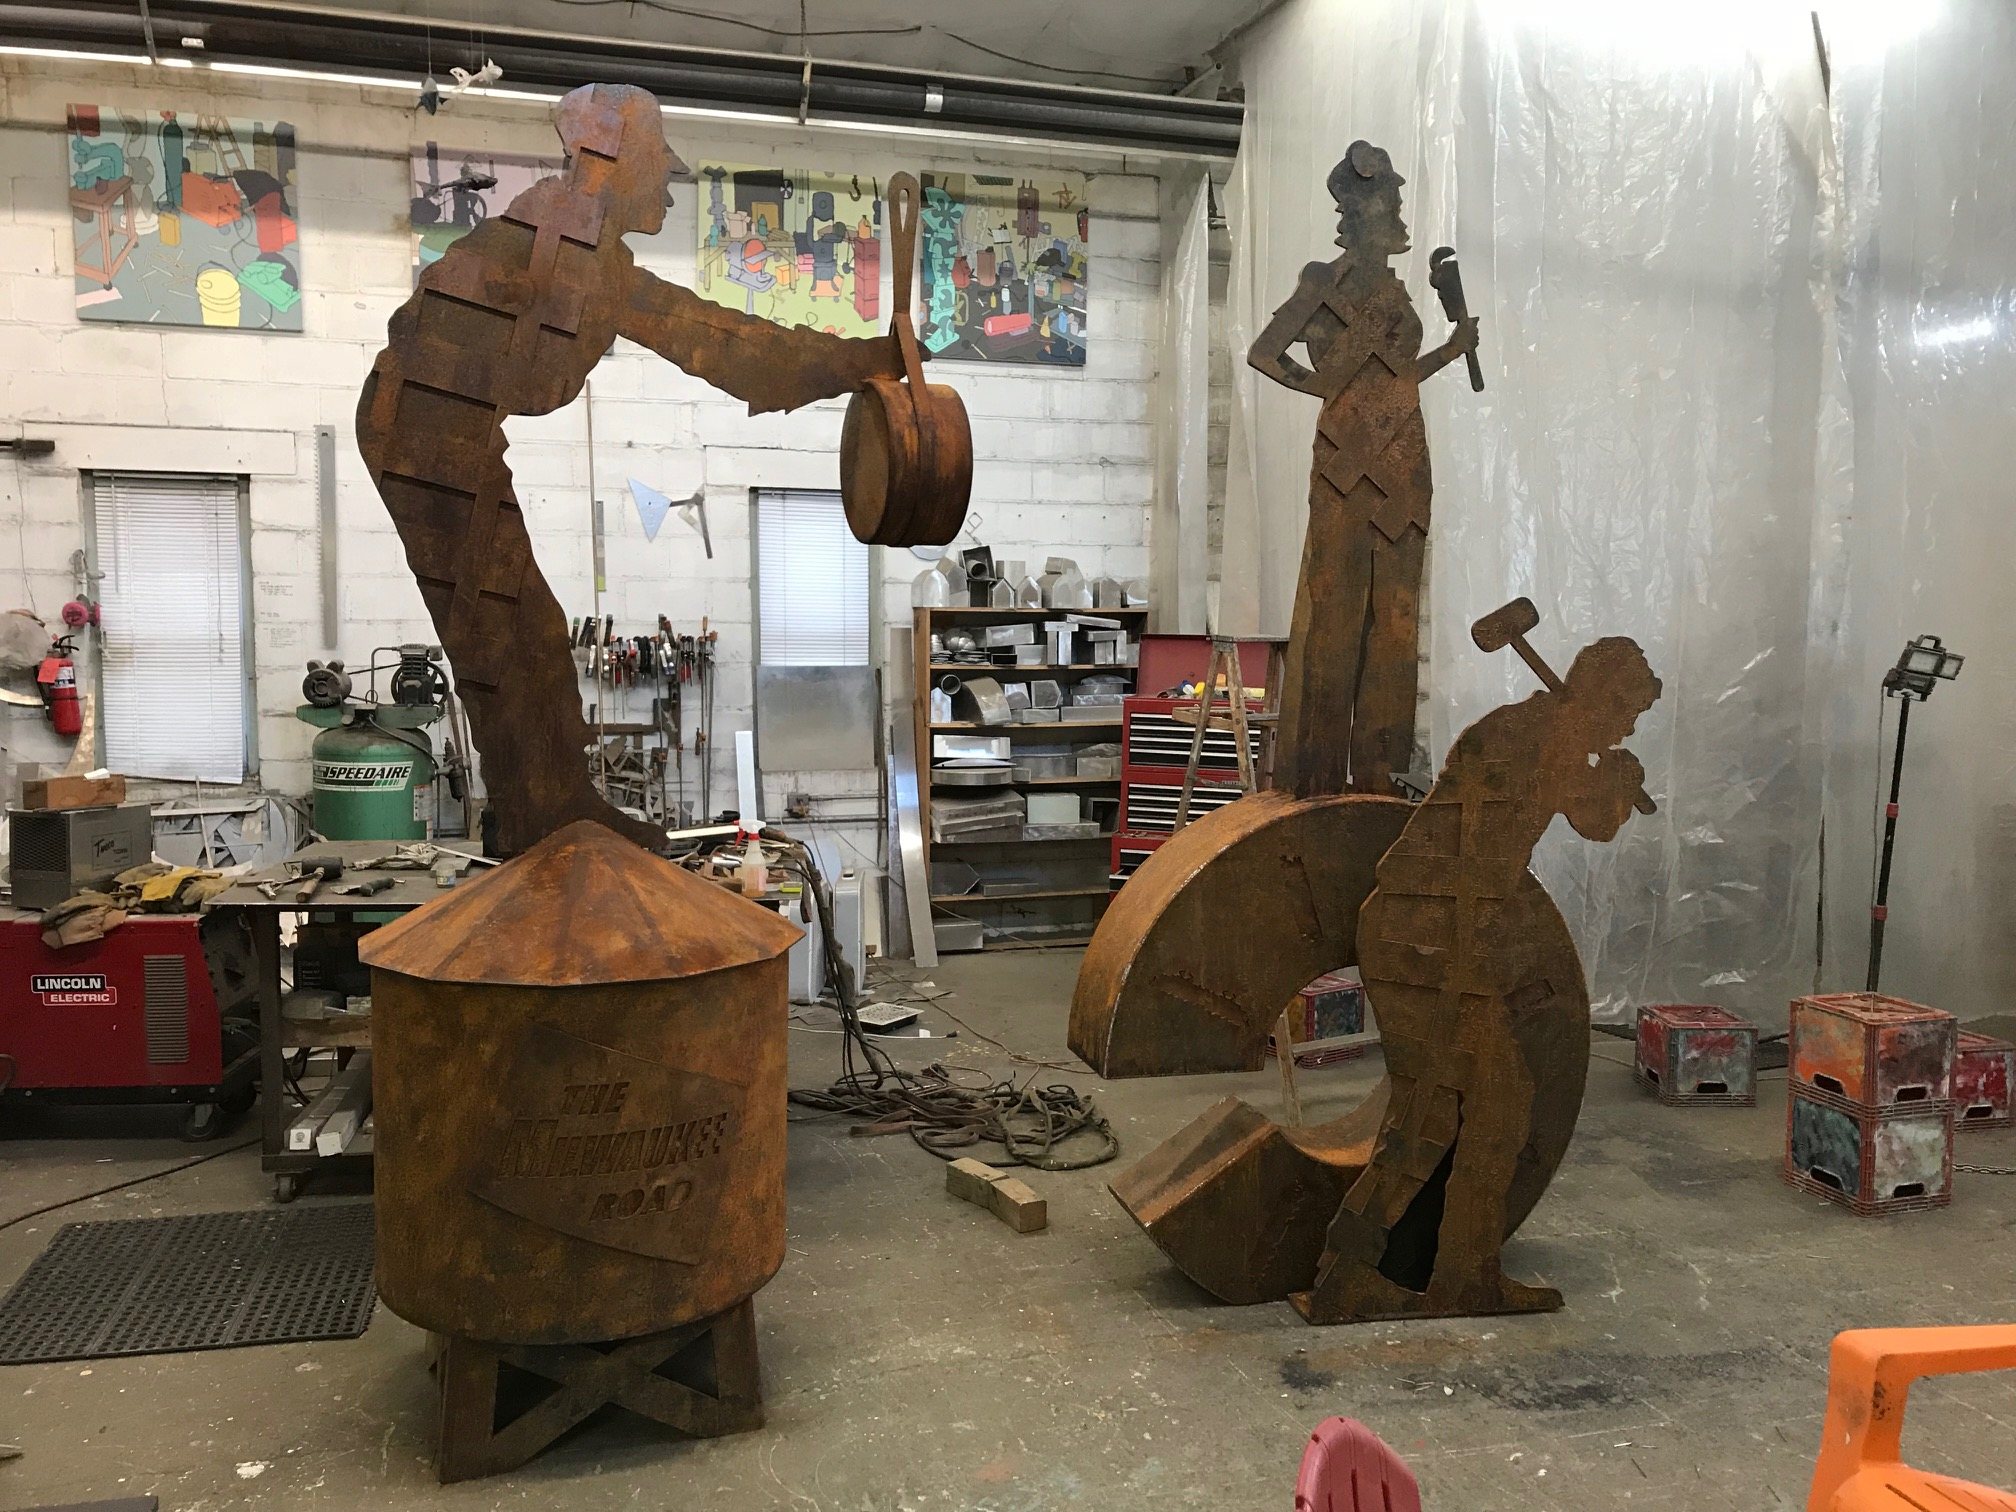 Two of the sculptures have already been built. The community is nearly halfway to the fundraising goal!